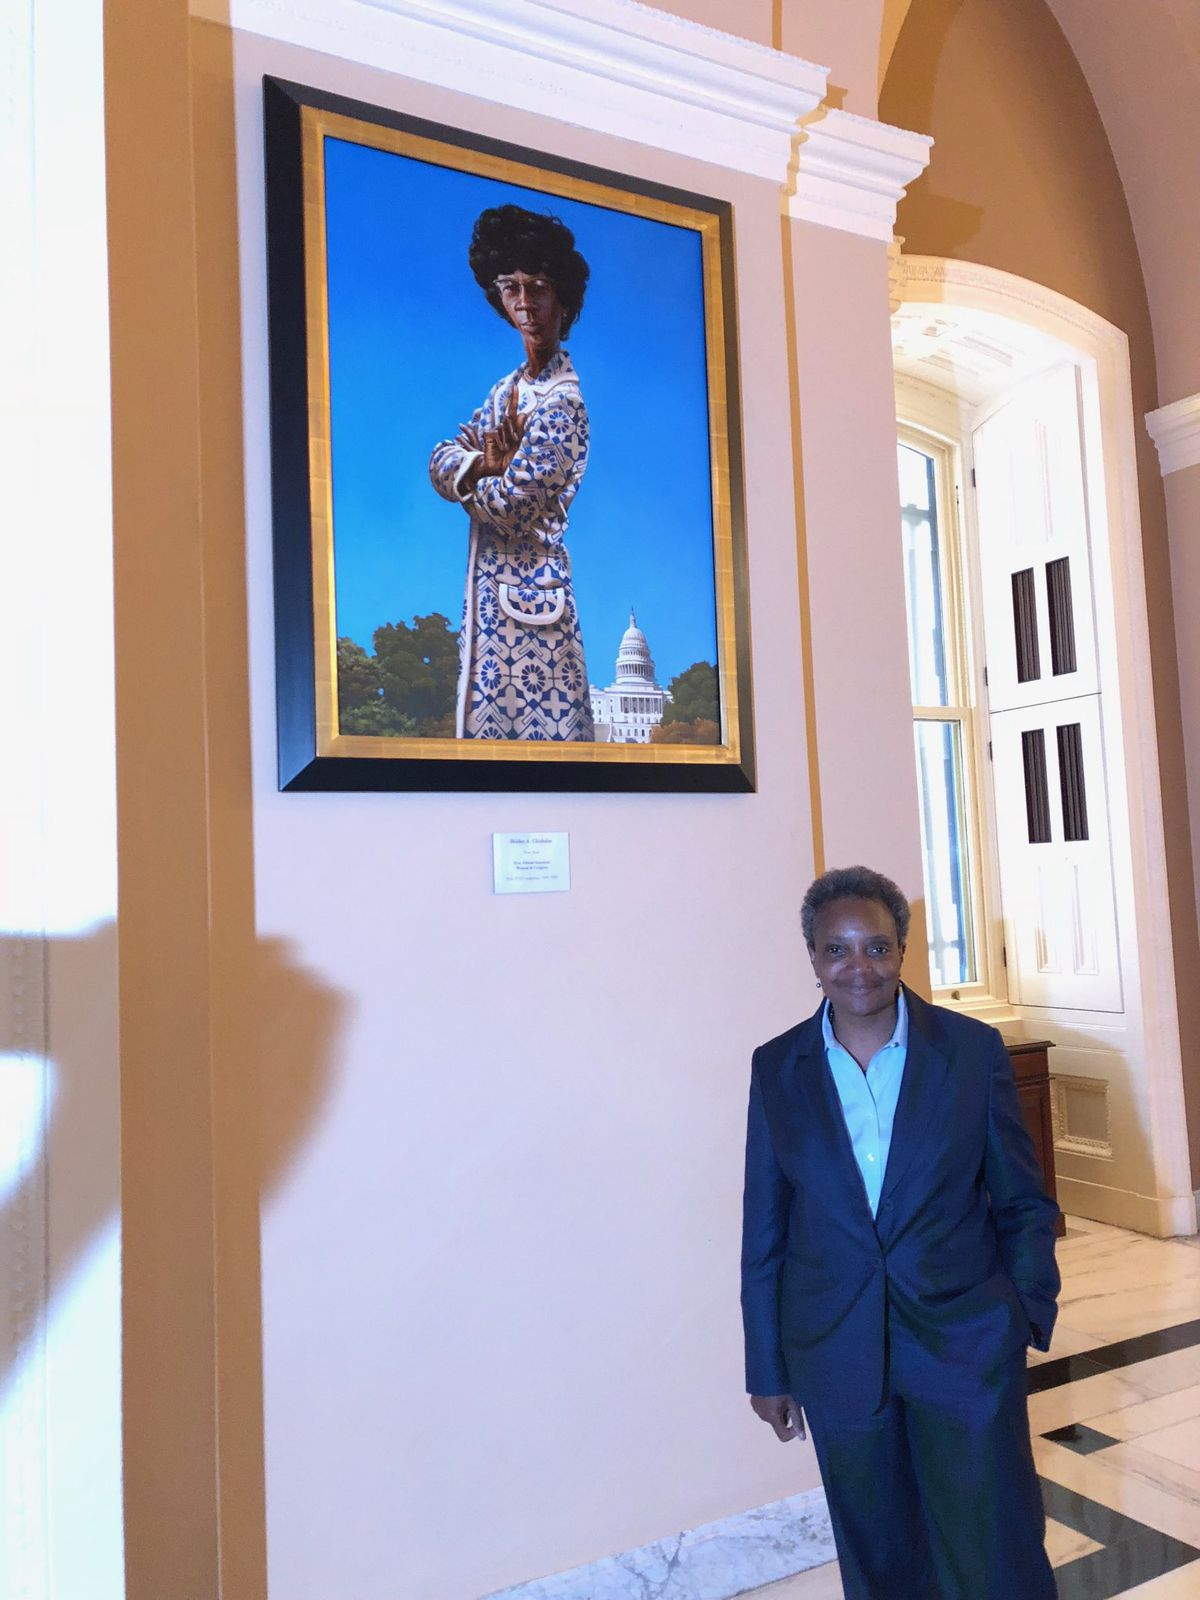 Mayor-elect Lori Lightfoot passed the portrait of Shirley Chisholm, the New Yorker who was the first African American woman to serve in Congress and the first African American to seek the presidency. | Lynn Sweet/Sun-Times photo